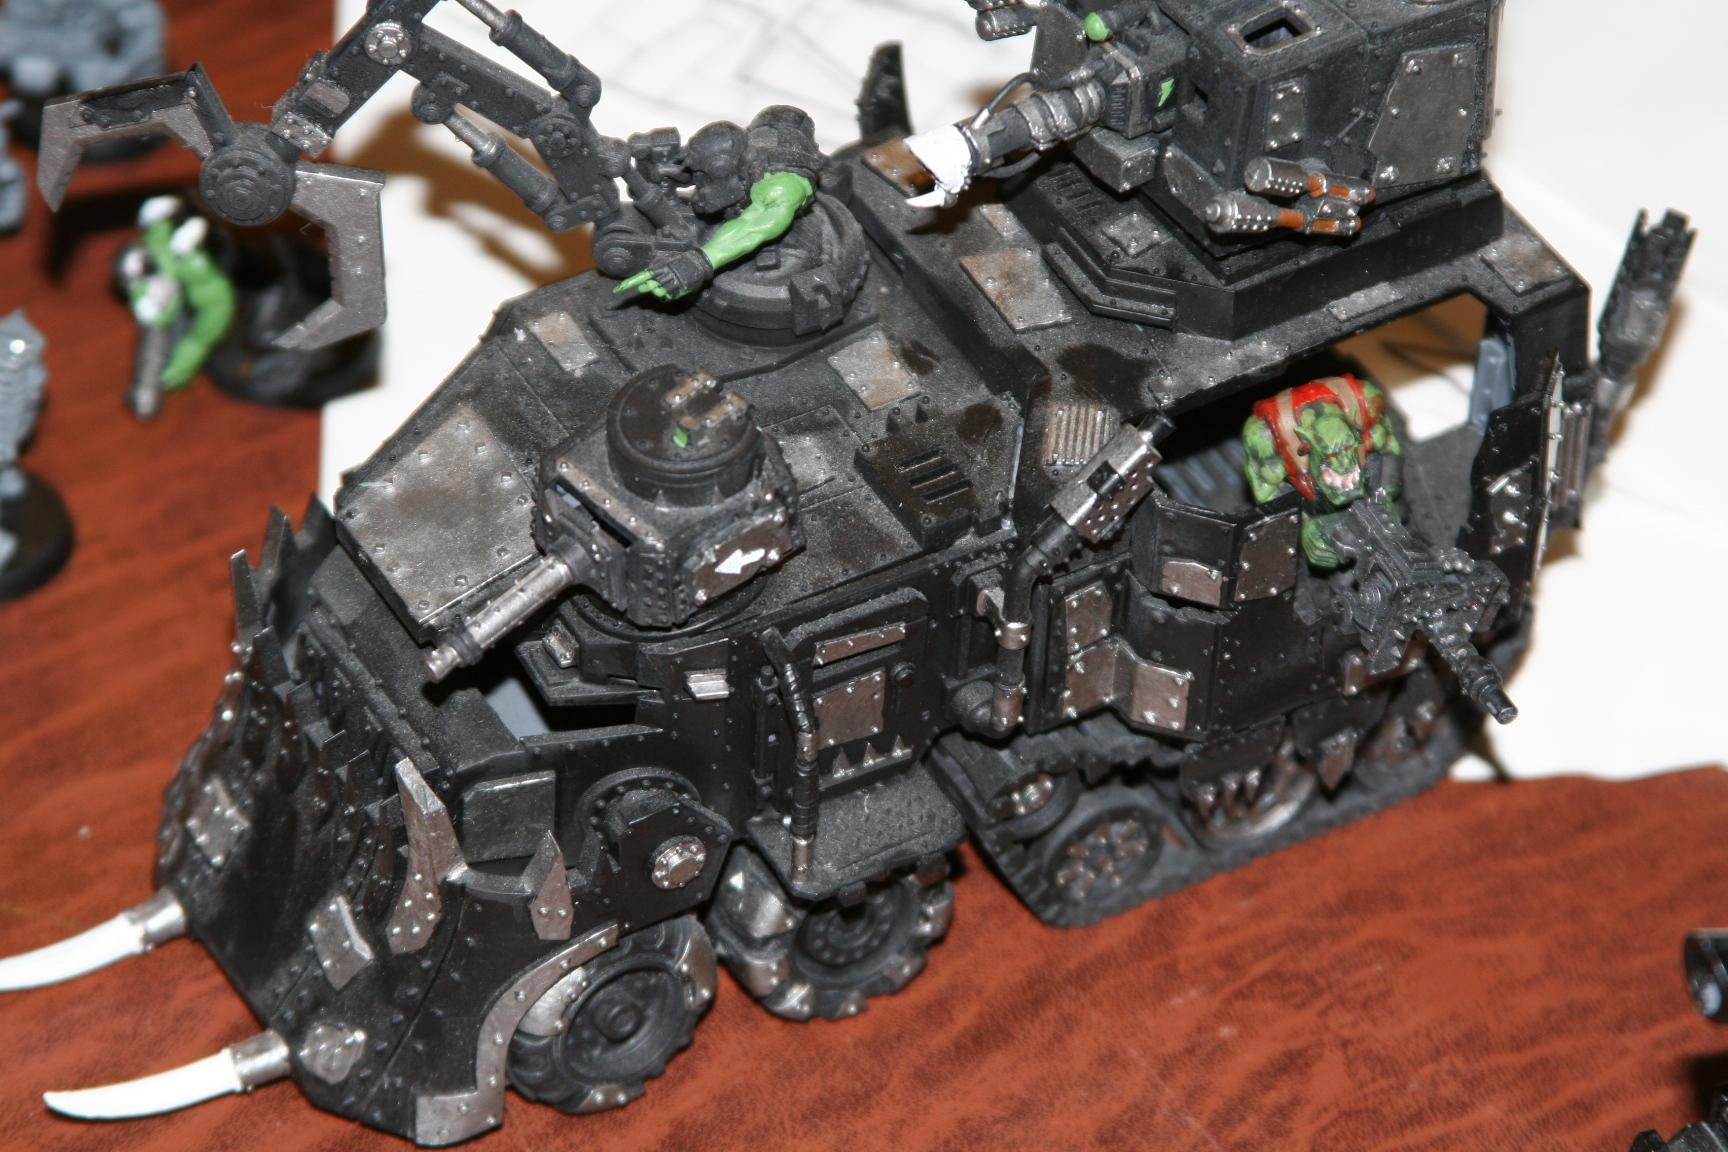 My friend's (former) Battlewagon.  I painted that gunner on the side